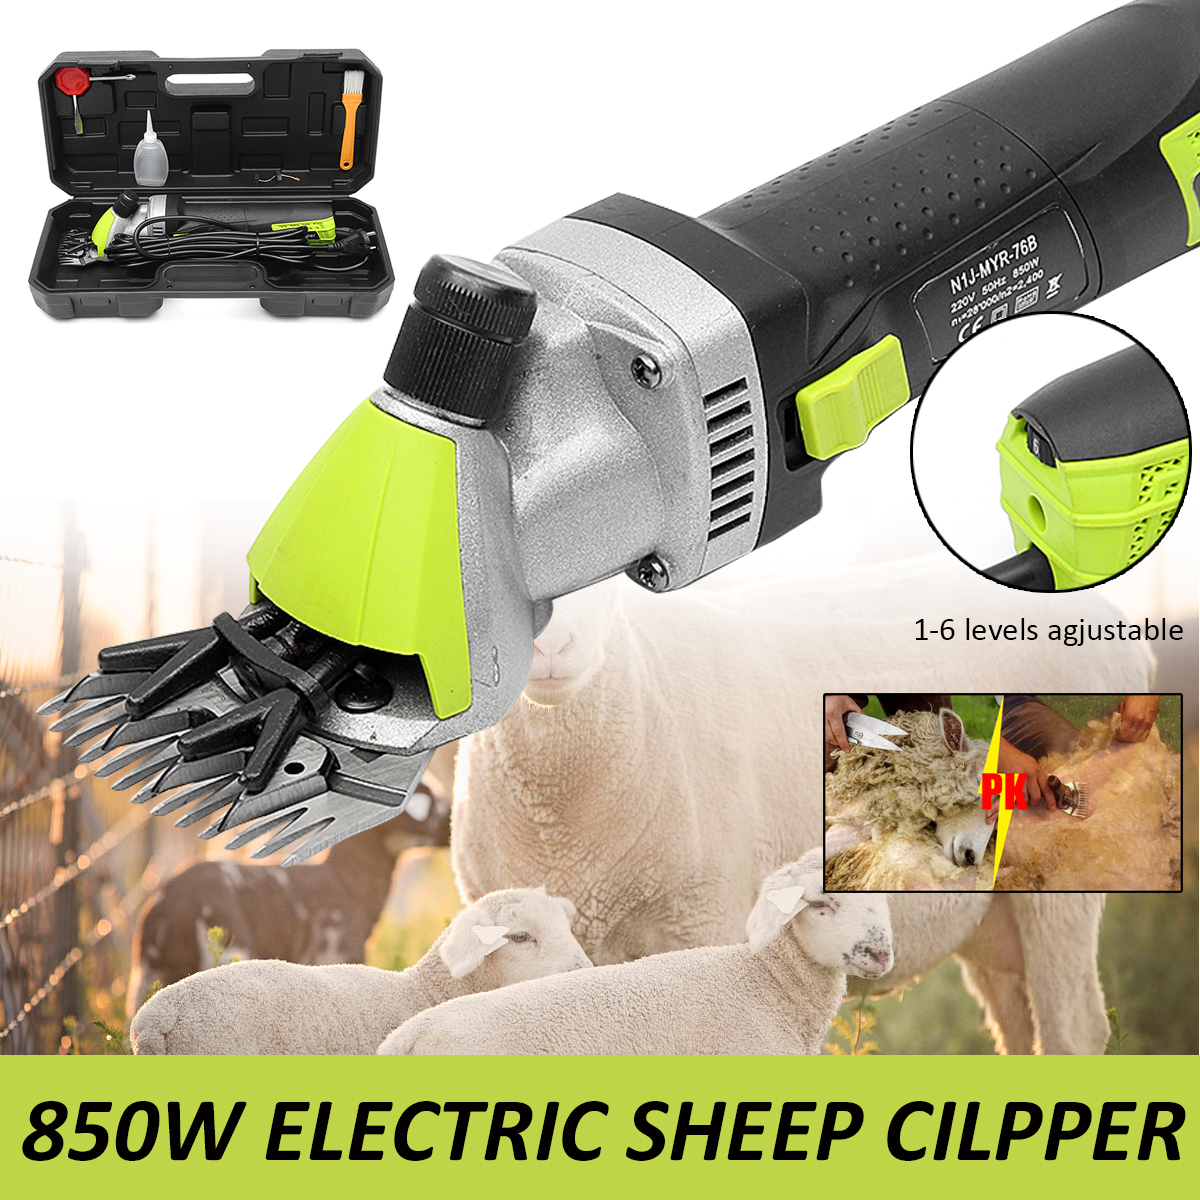 220V 850W Electric Shearing Wool Machine Sheep Goats Clipper Animal Electric Trimmer Tool Farm Home Dog Cat Shearing Supplies new 680w sheep wool clipper electric sheep goats shearing clipper shears 1 set 13 straight tooth blade comb